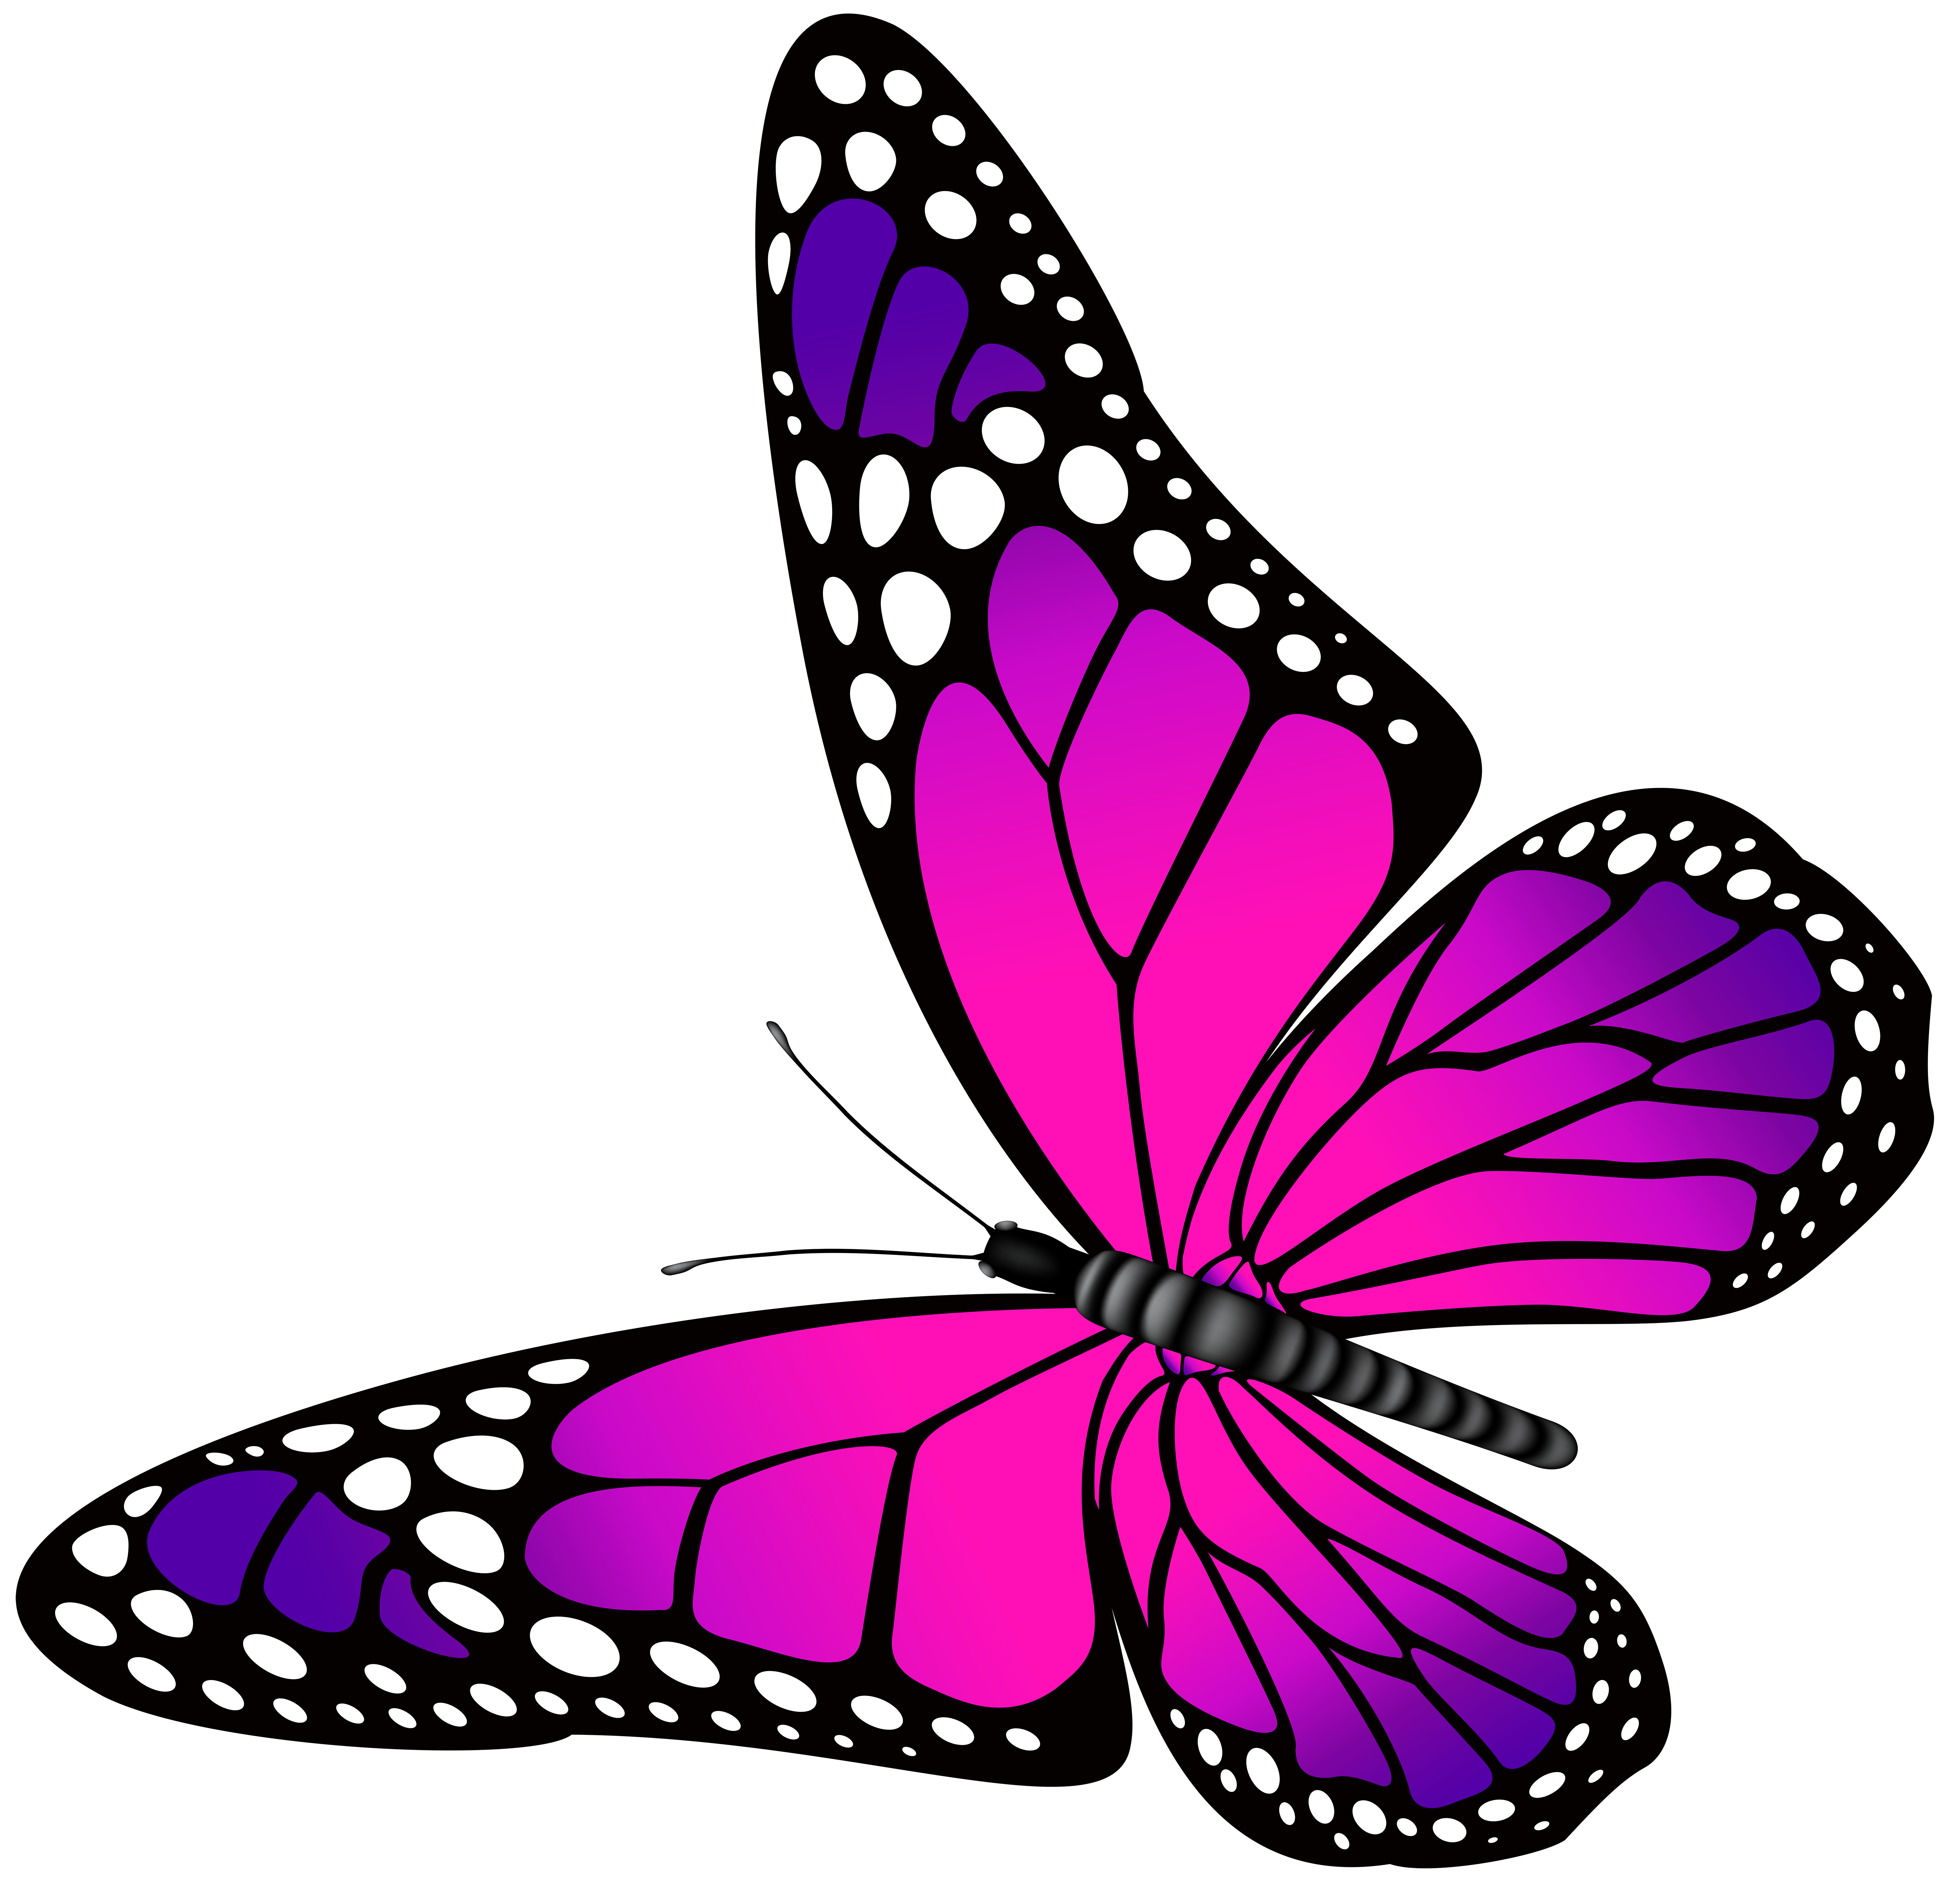 Butterfly Pink And Purple Transparent Png Clip Art Image Butterfly Painting Butterfly Watercolor Butterfly Art